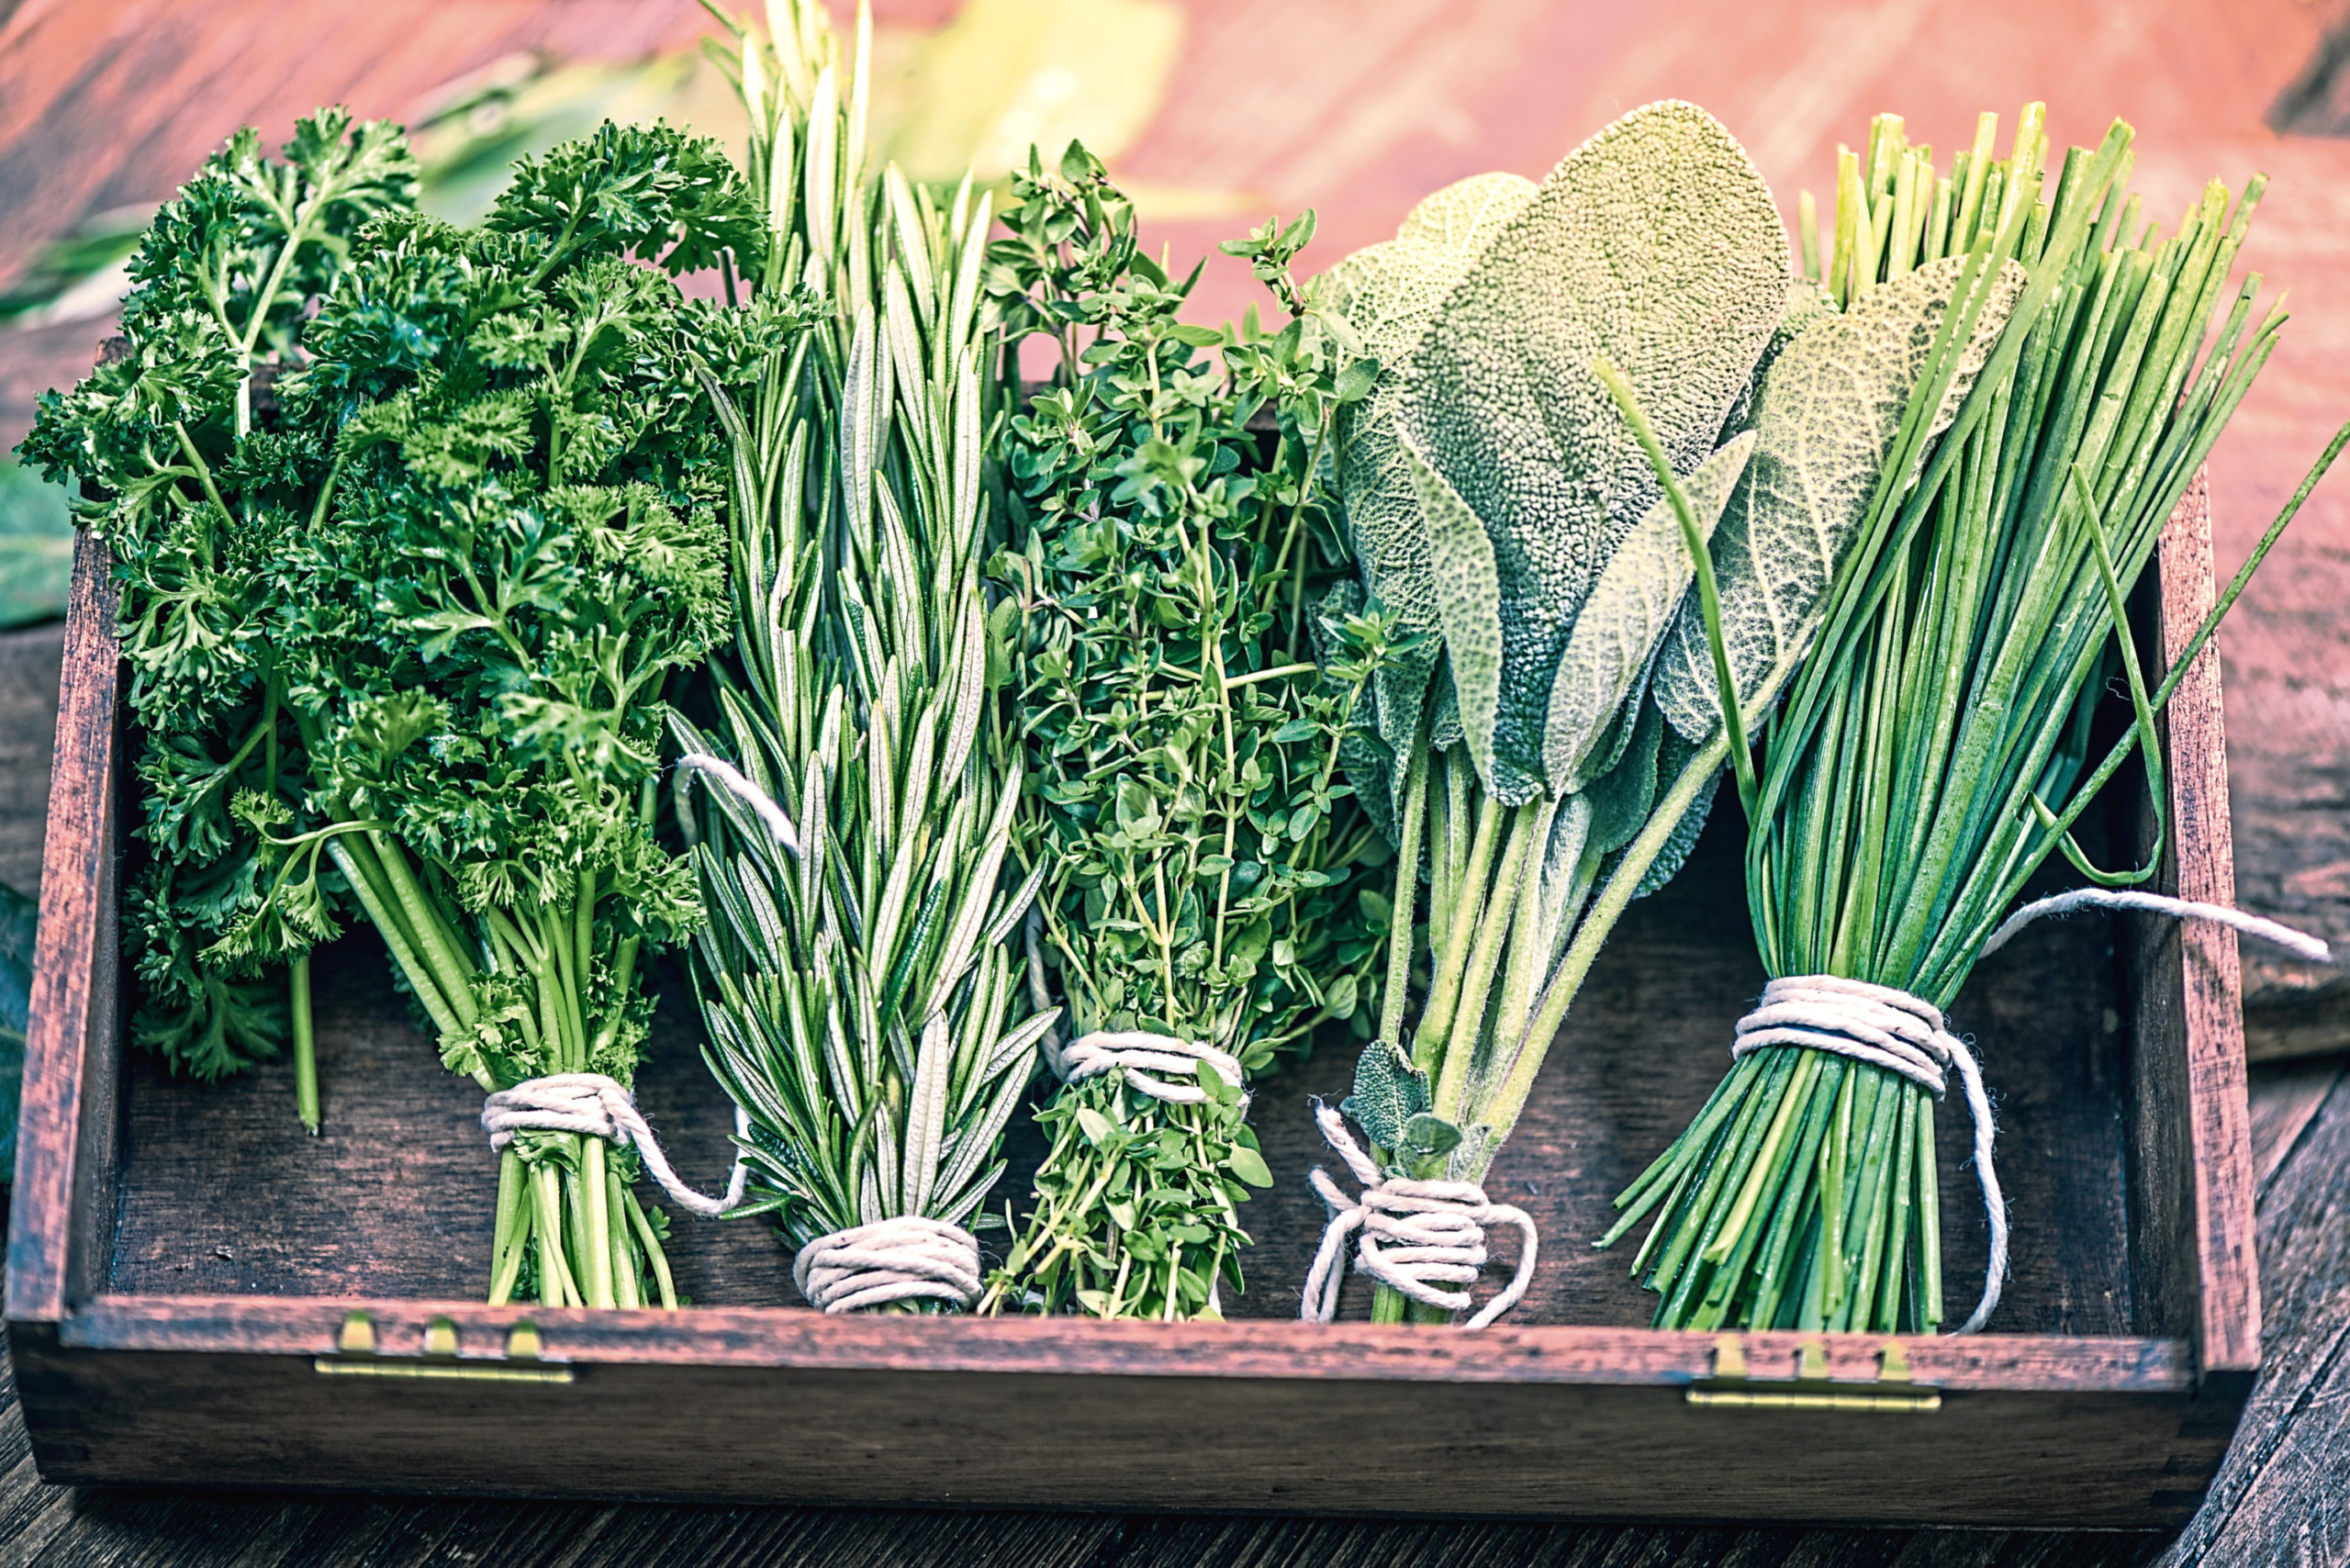 Growing your own herbs is the perfect lockdown task.